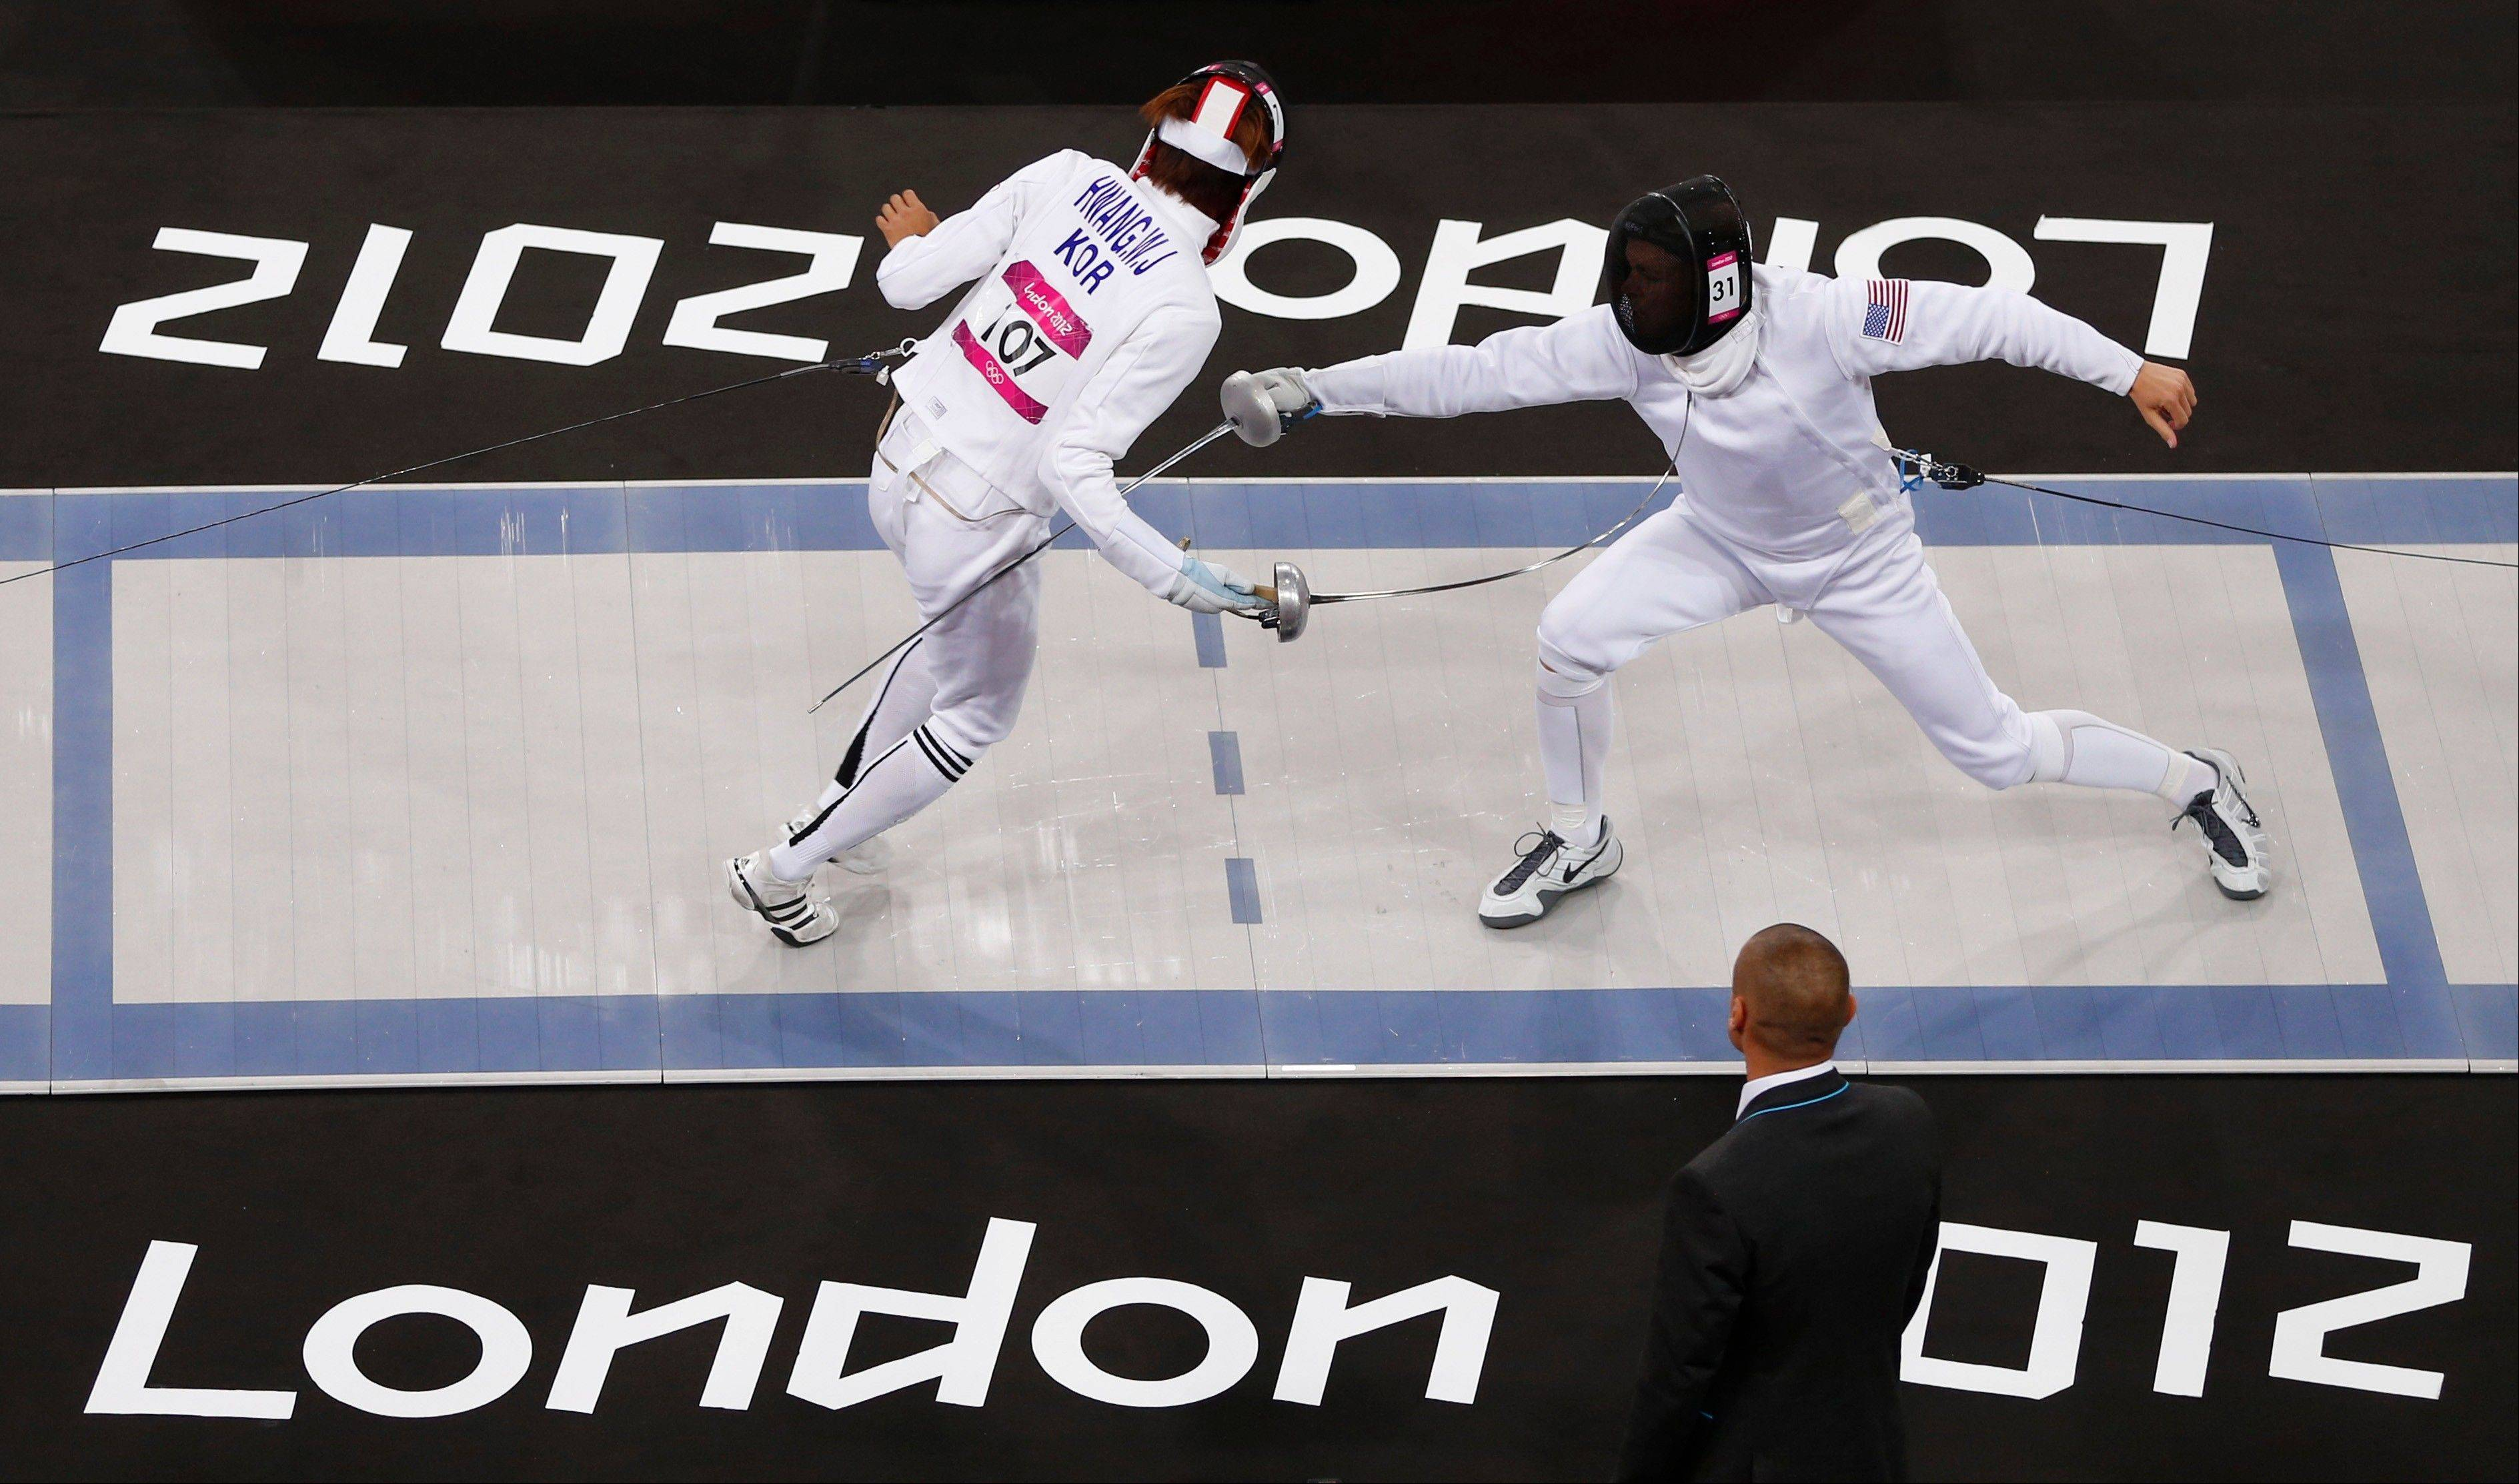 Hwang Woojin of South Korea, left, defeats Dennis Bowseher of the United States during the men's fencing section of the modern pentathlon at the 2012 Summer Olympics, Saturday, Aug. 11, 2012, in London.